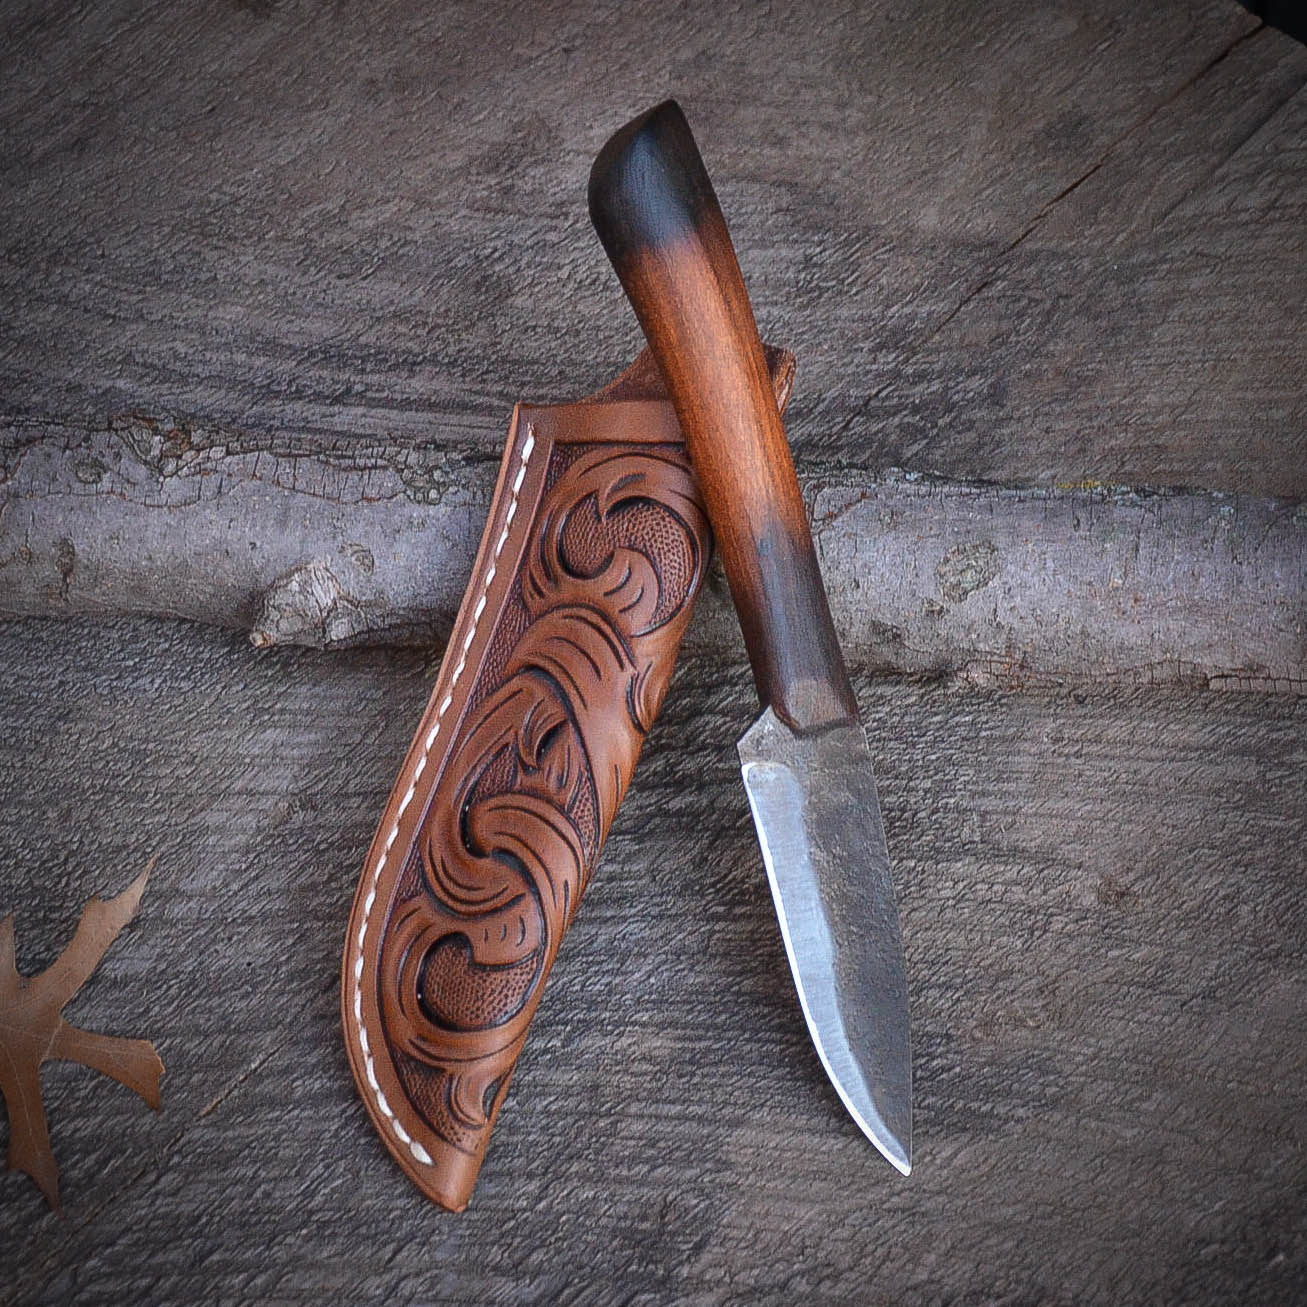 Smoky Hill Hunter - Hand Forged Knife, Custom handmade knife, Bushcraft knife, USA